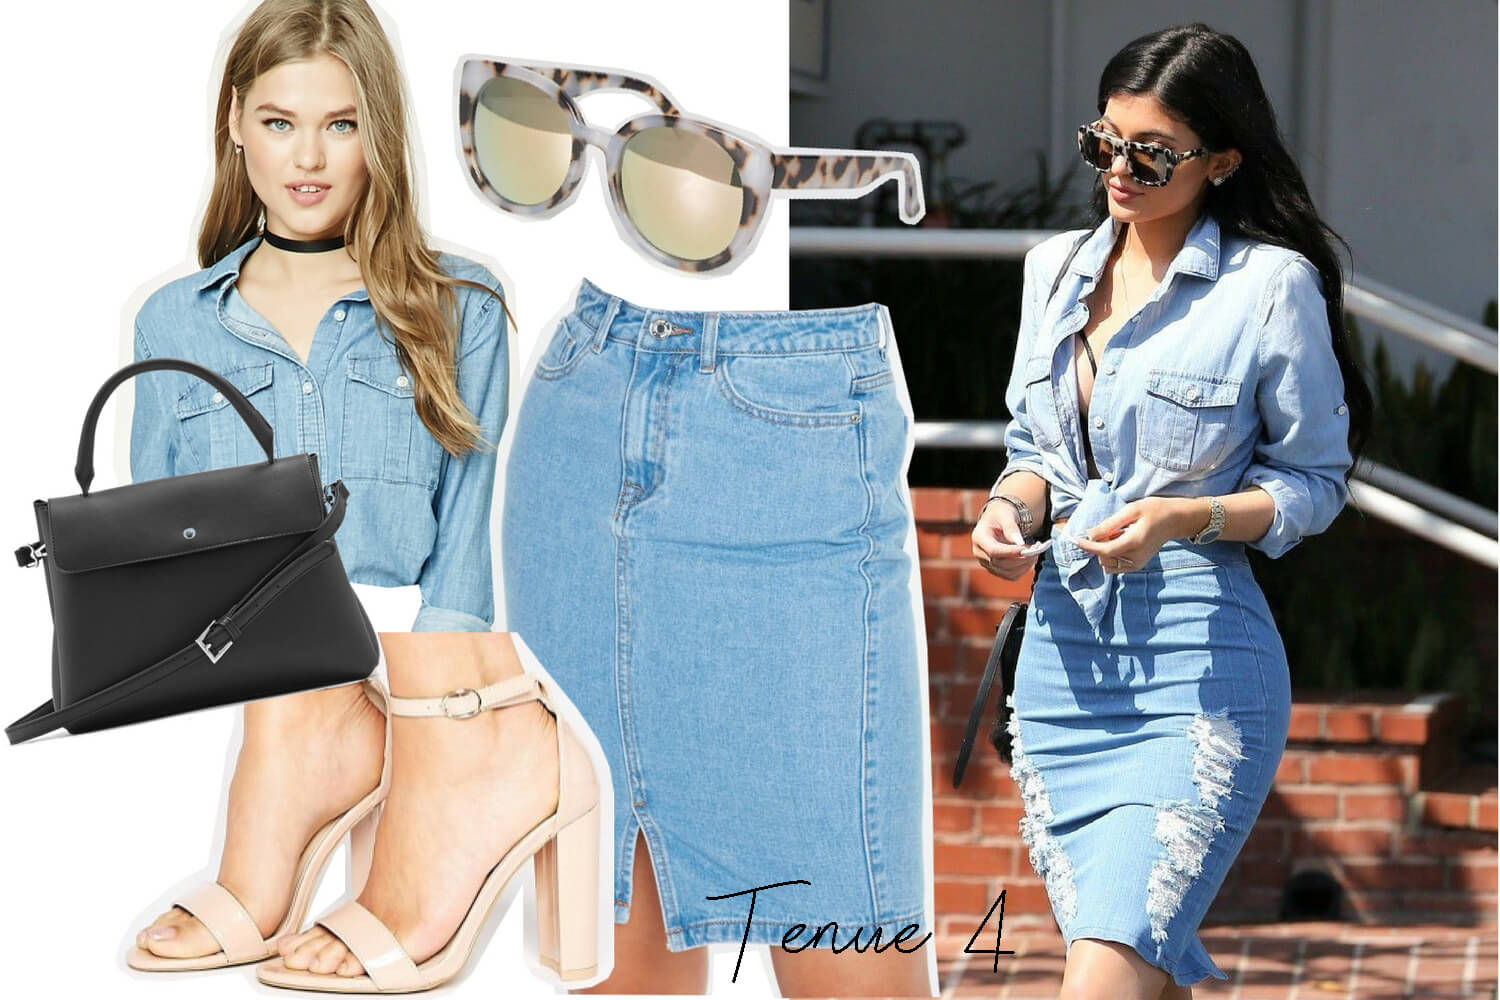 Get the look Kylie Jenner. Tenue 4 | happinesscoco.com